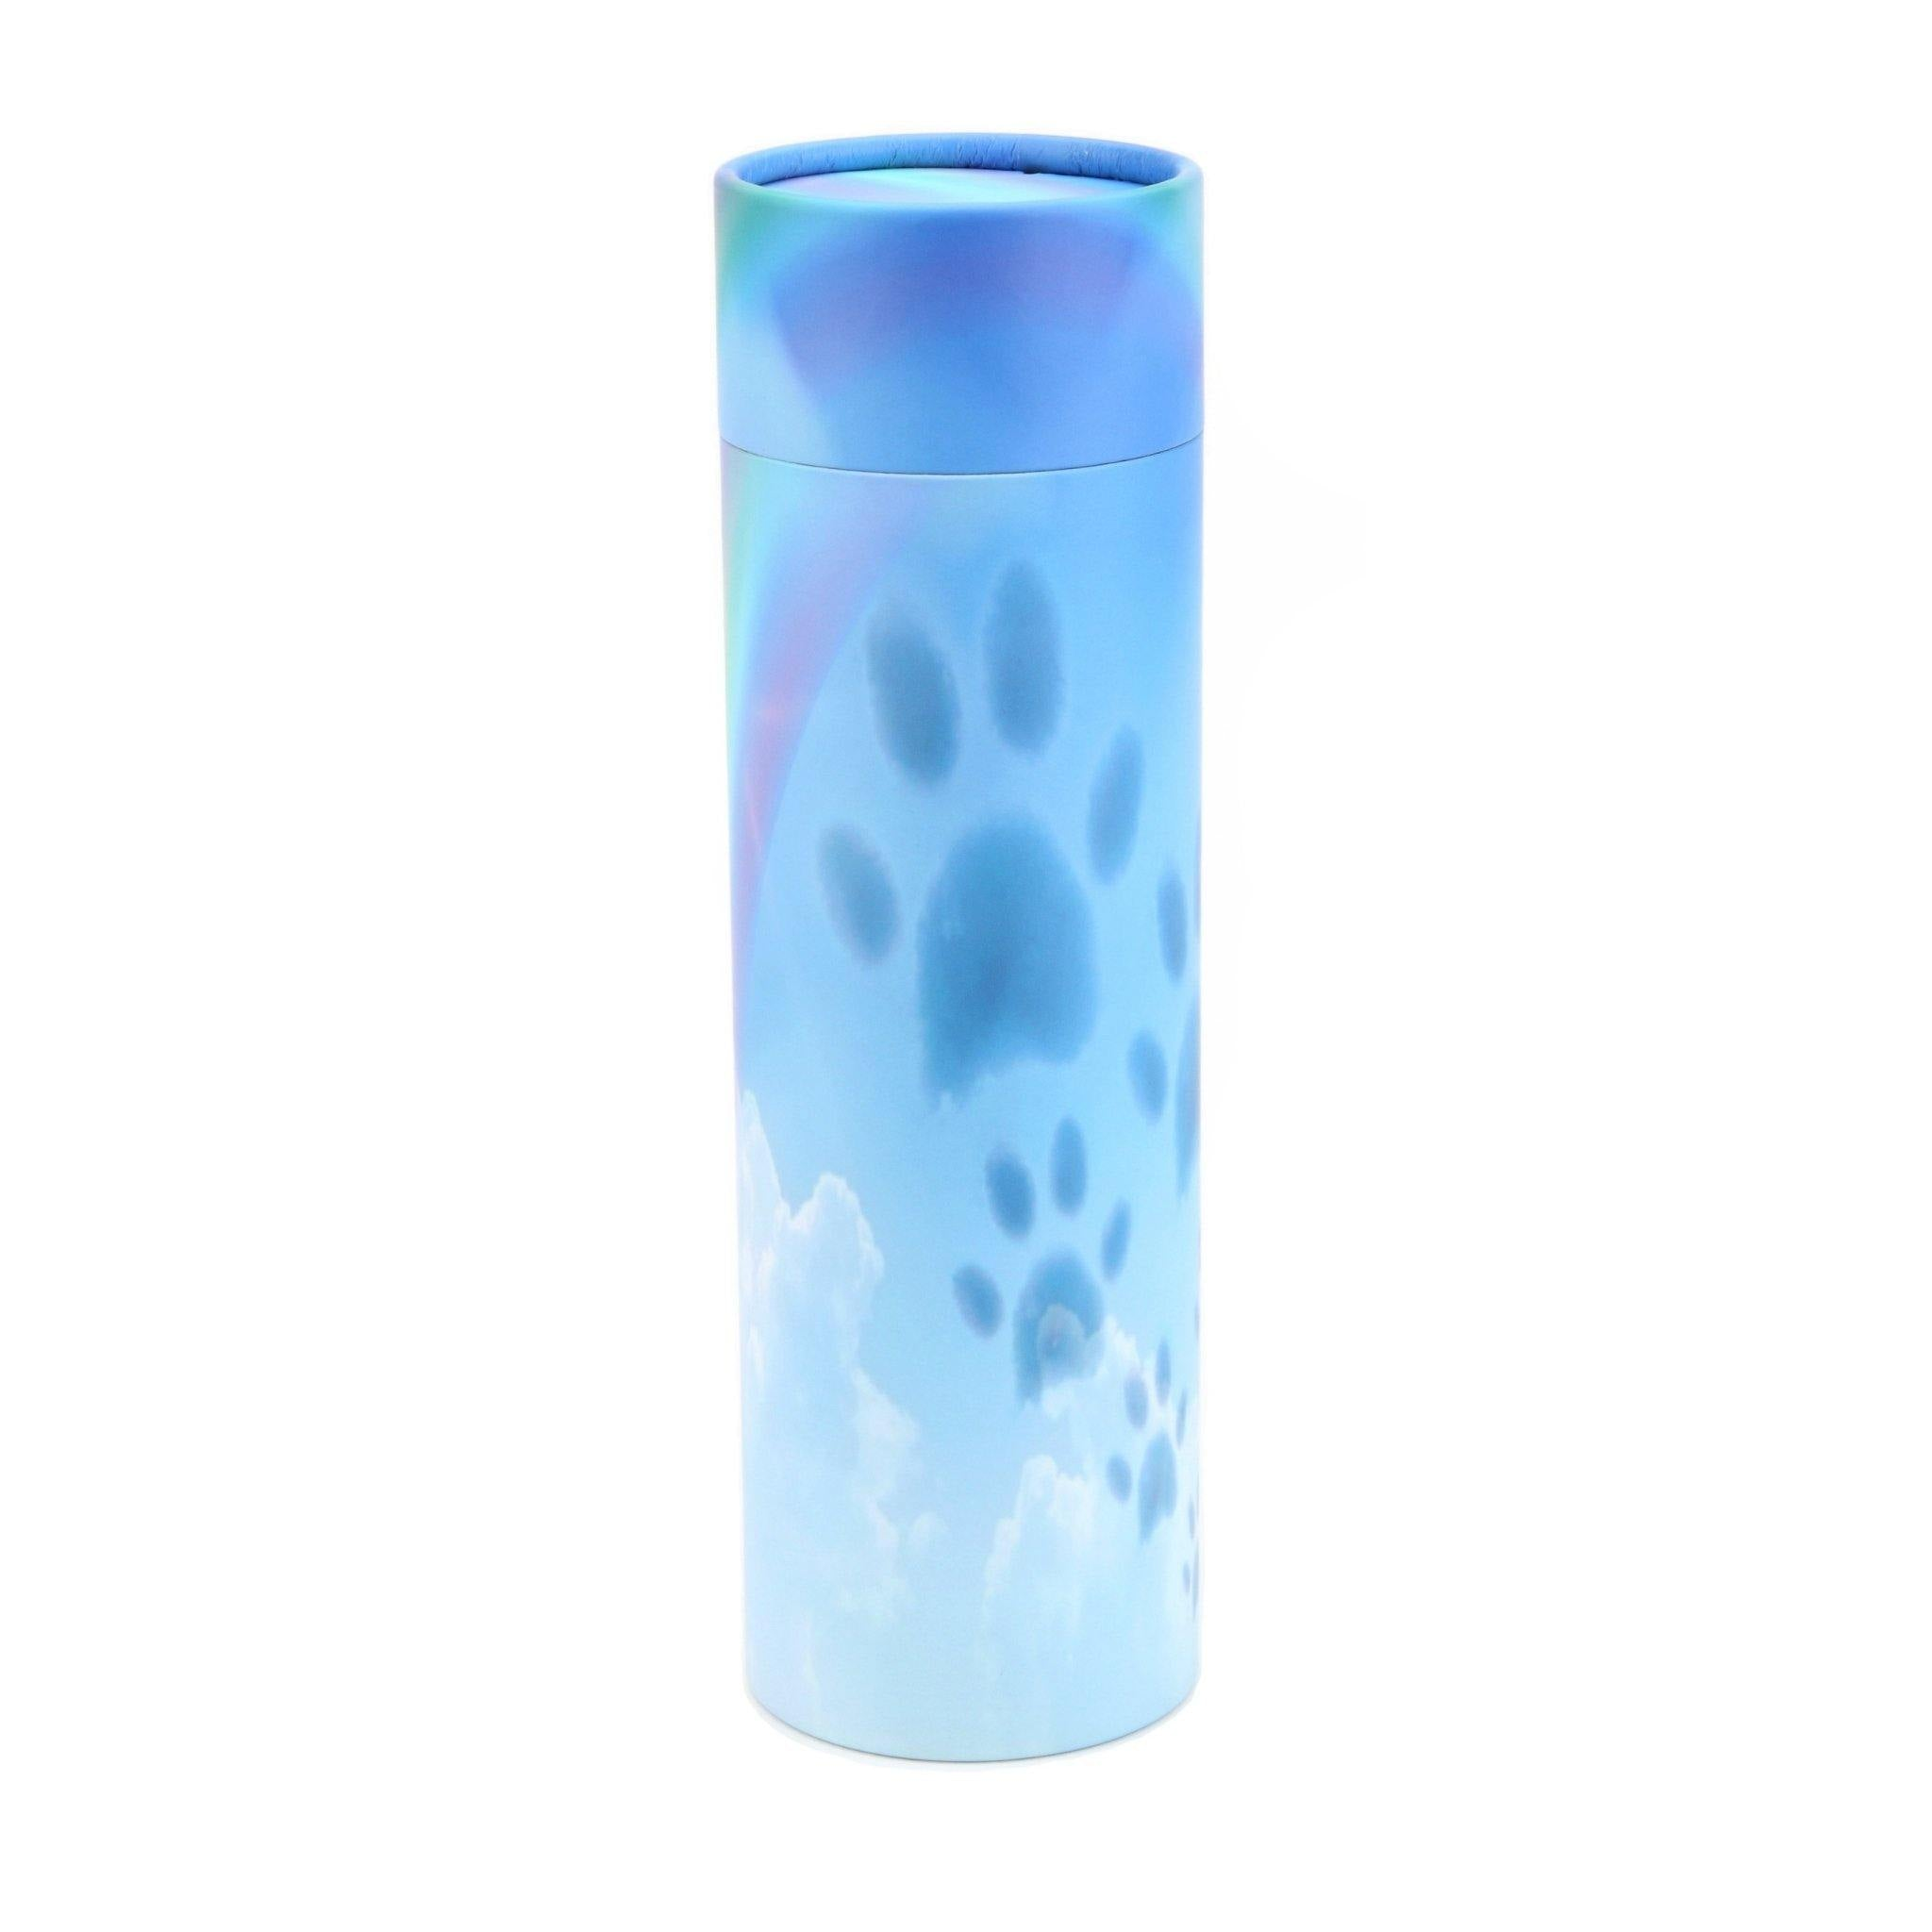 Paws Sky Cremation Ashes Scattering Tube 50CI - Urns UK